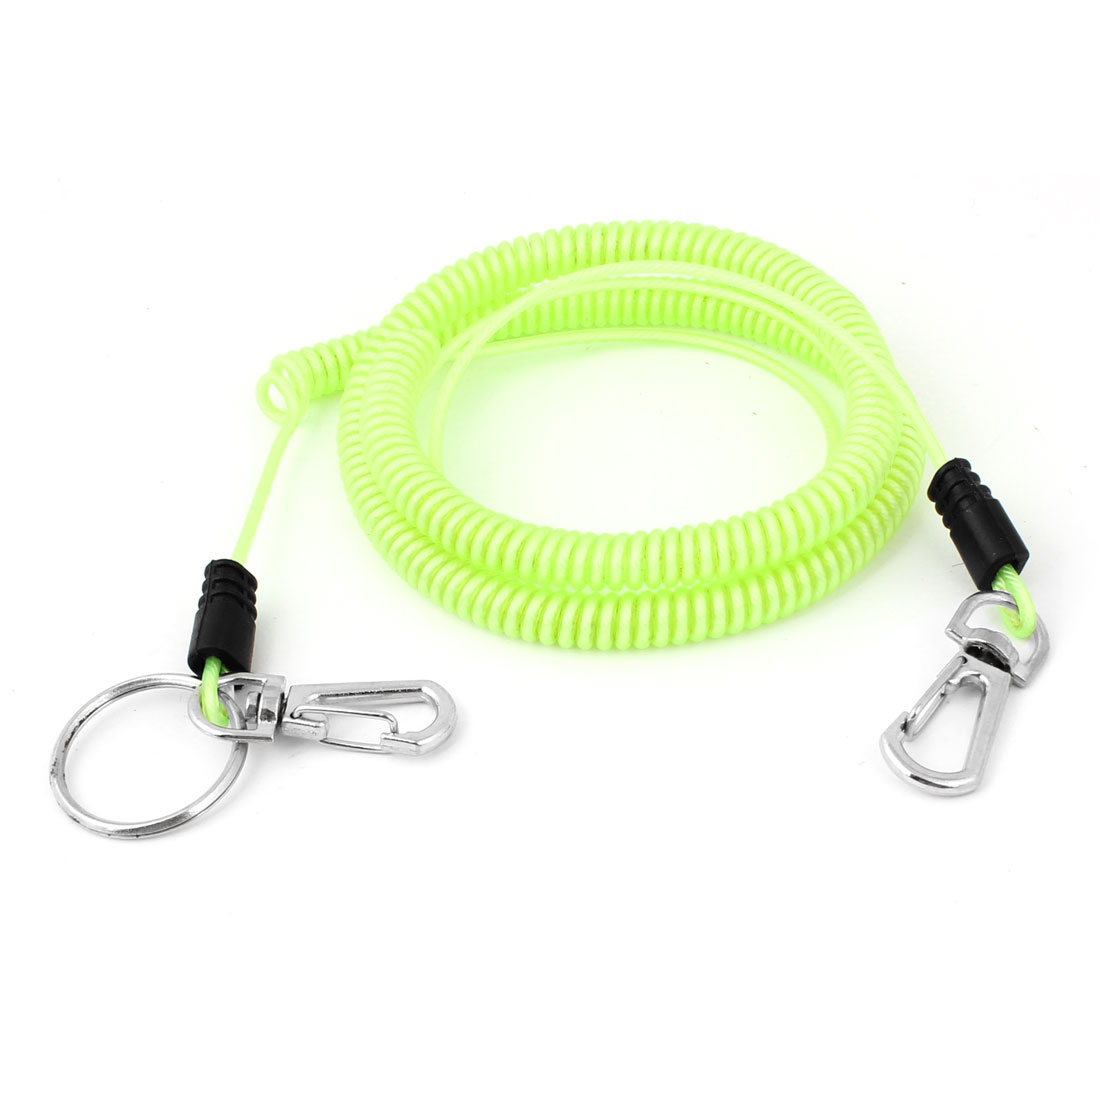 6M Self Locking Hook Light Green Flexible Fishing Safety Line Coiled Lanyard